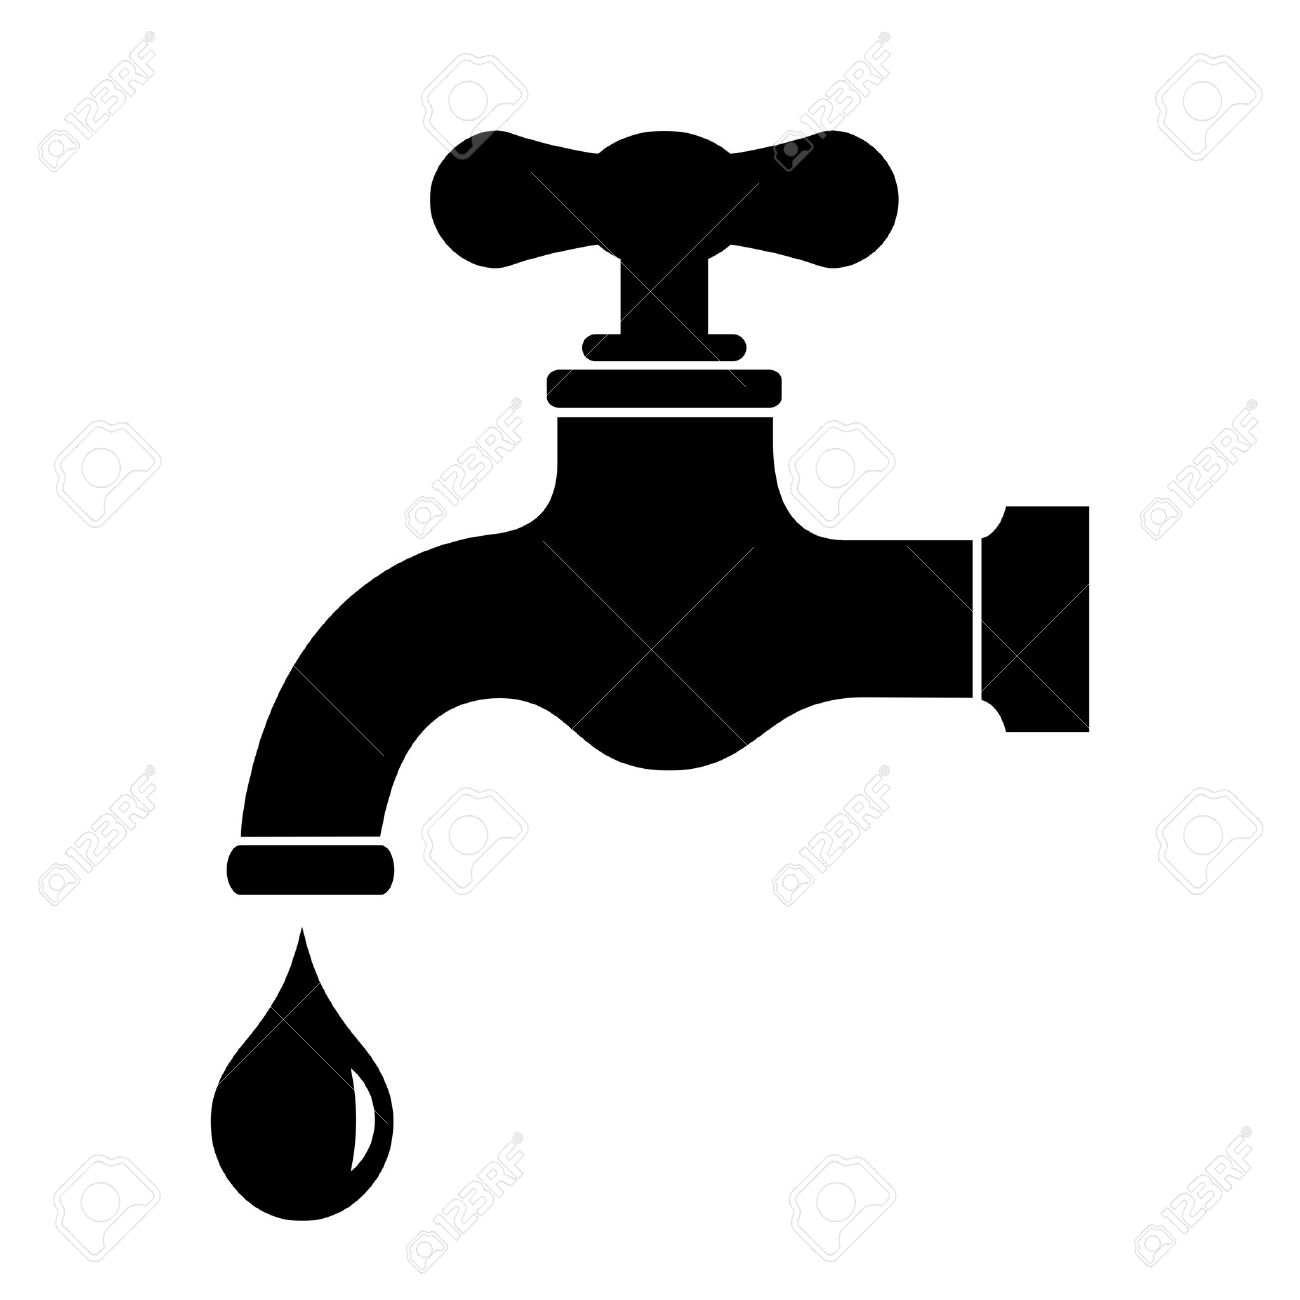 Water Tap Icon Royalty Free Cliparts, Vectors, And Stock.